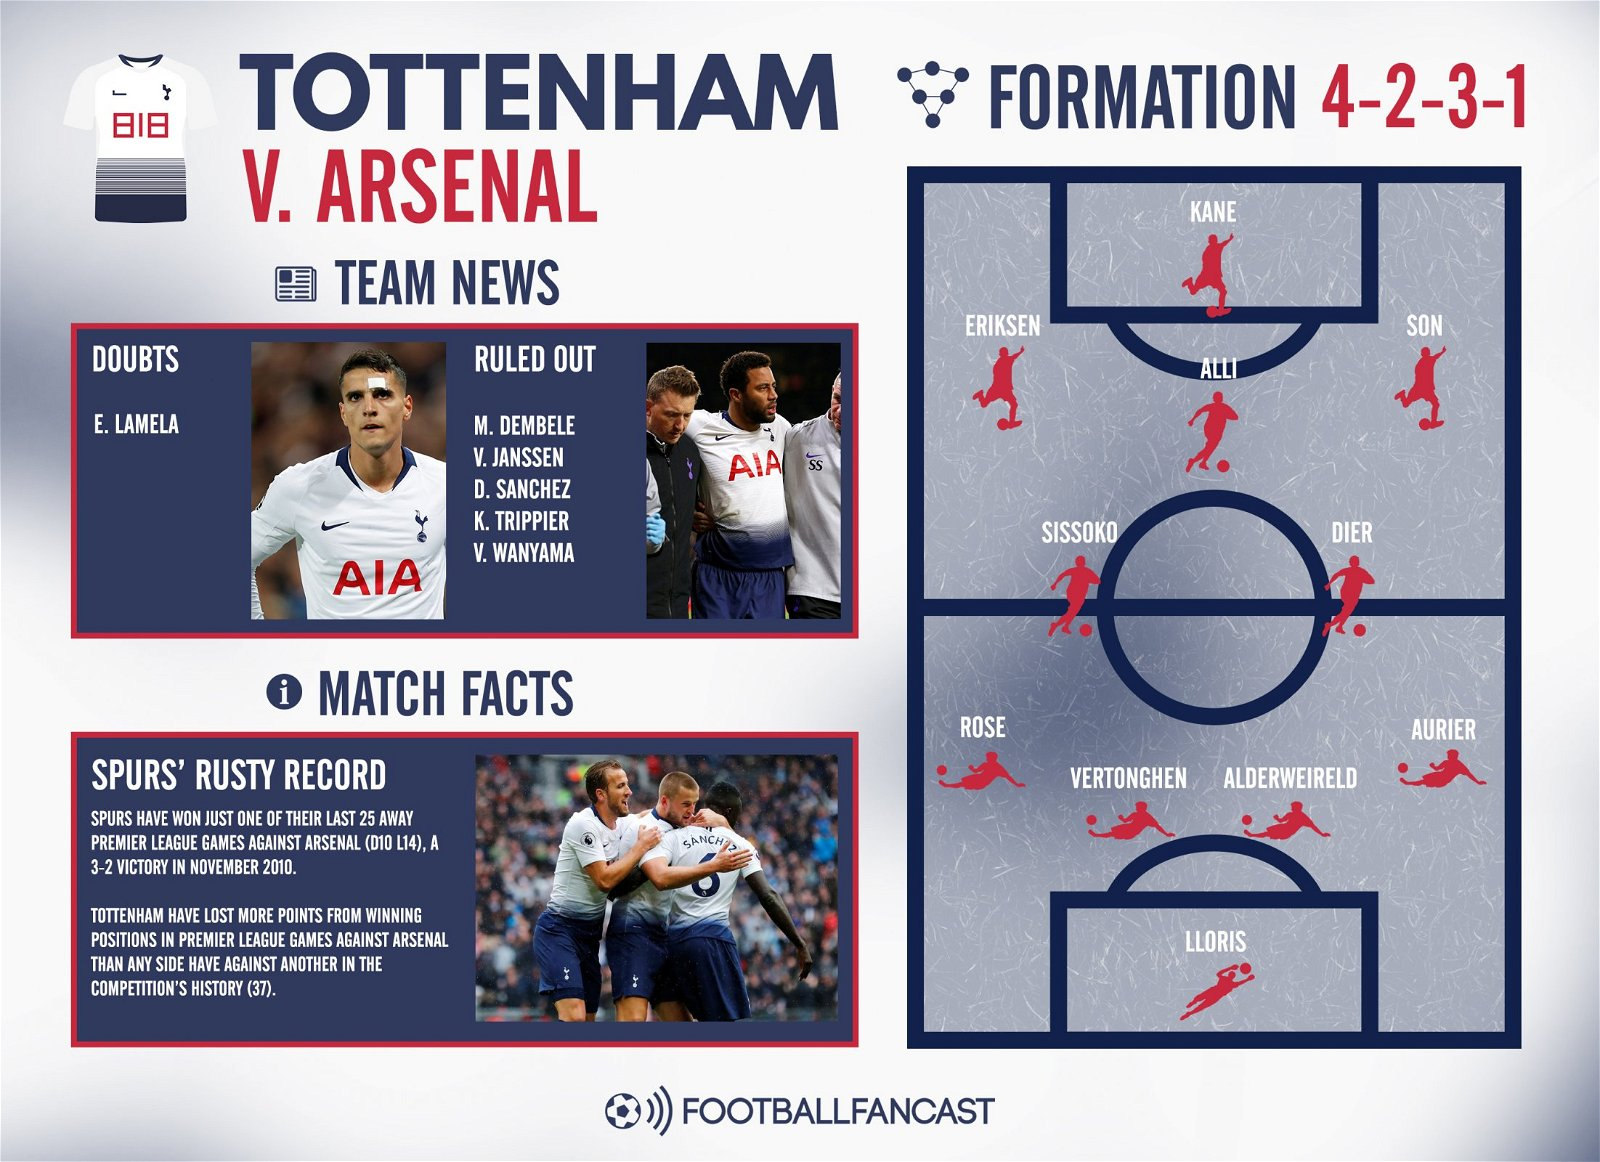 Tottenham Team News for Arsenal clash